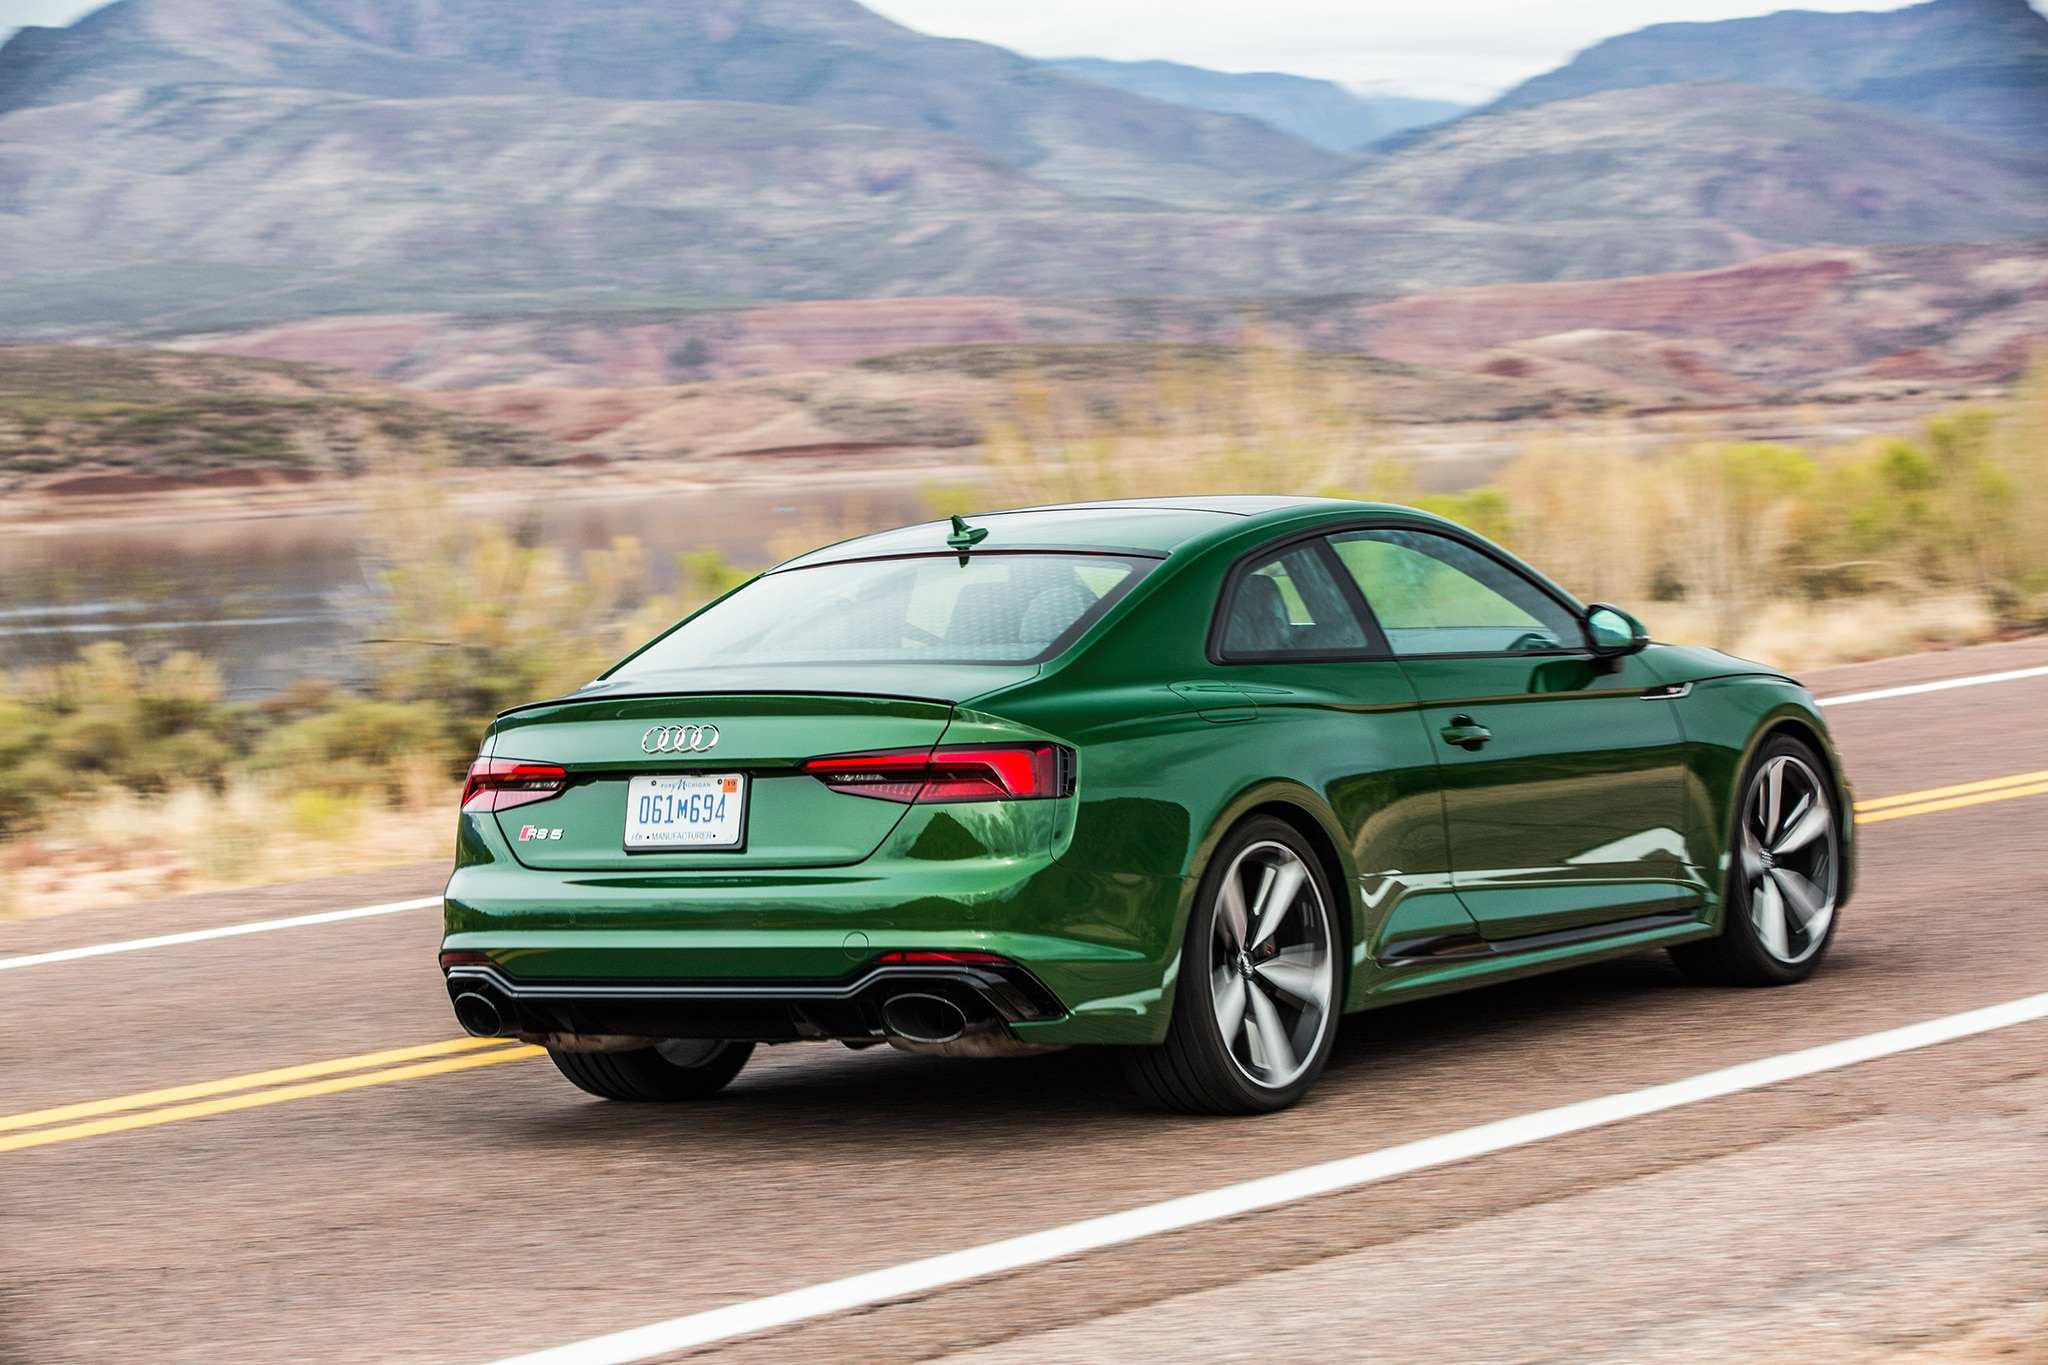 2018 Audi Rs 5 Coupe Us Spec First Drive Review Automobile Magazine